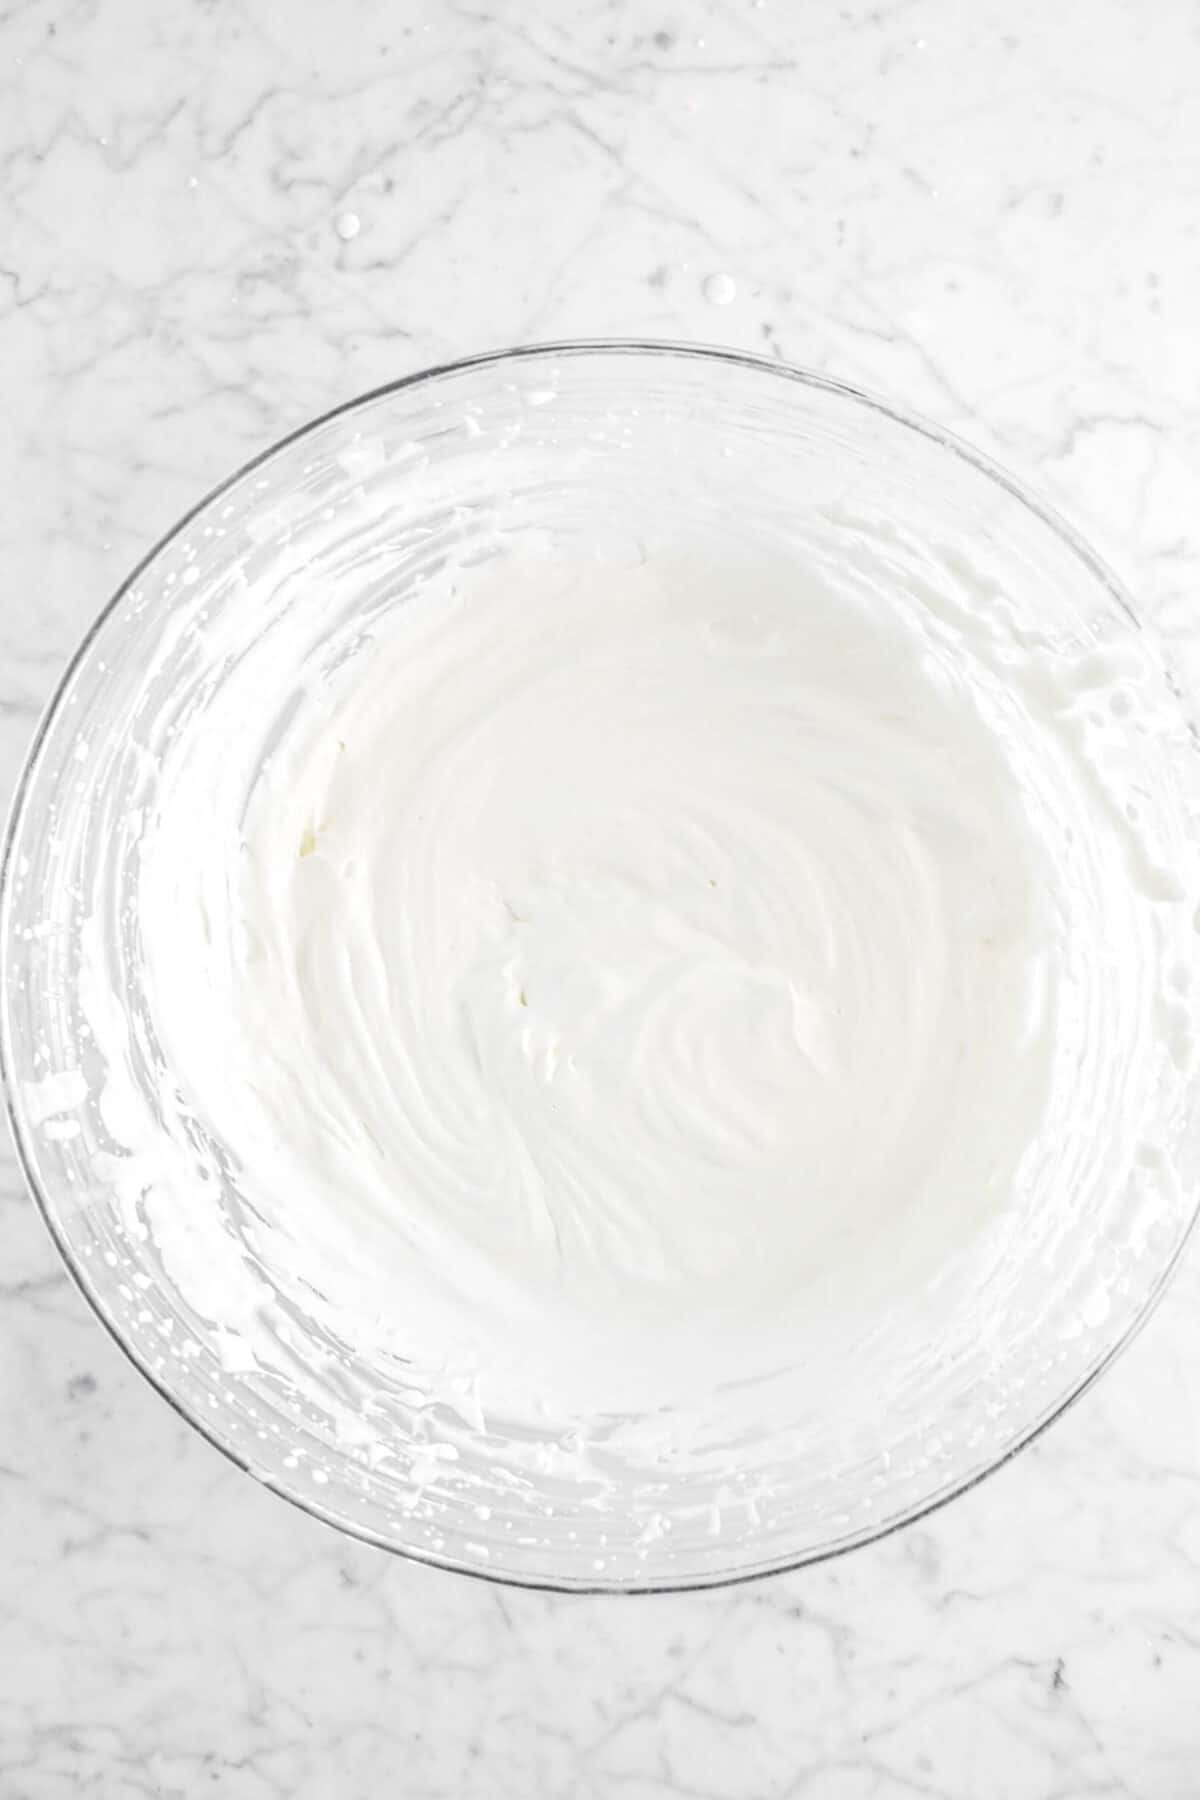 chantilly cream in glass bowl